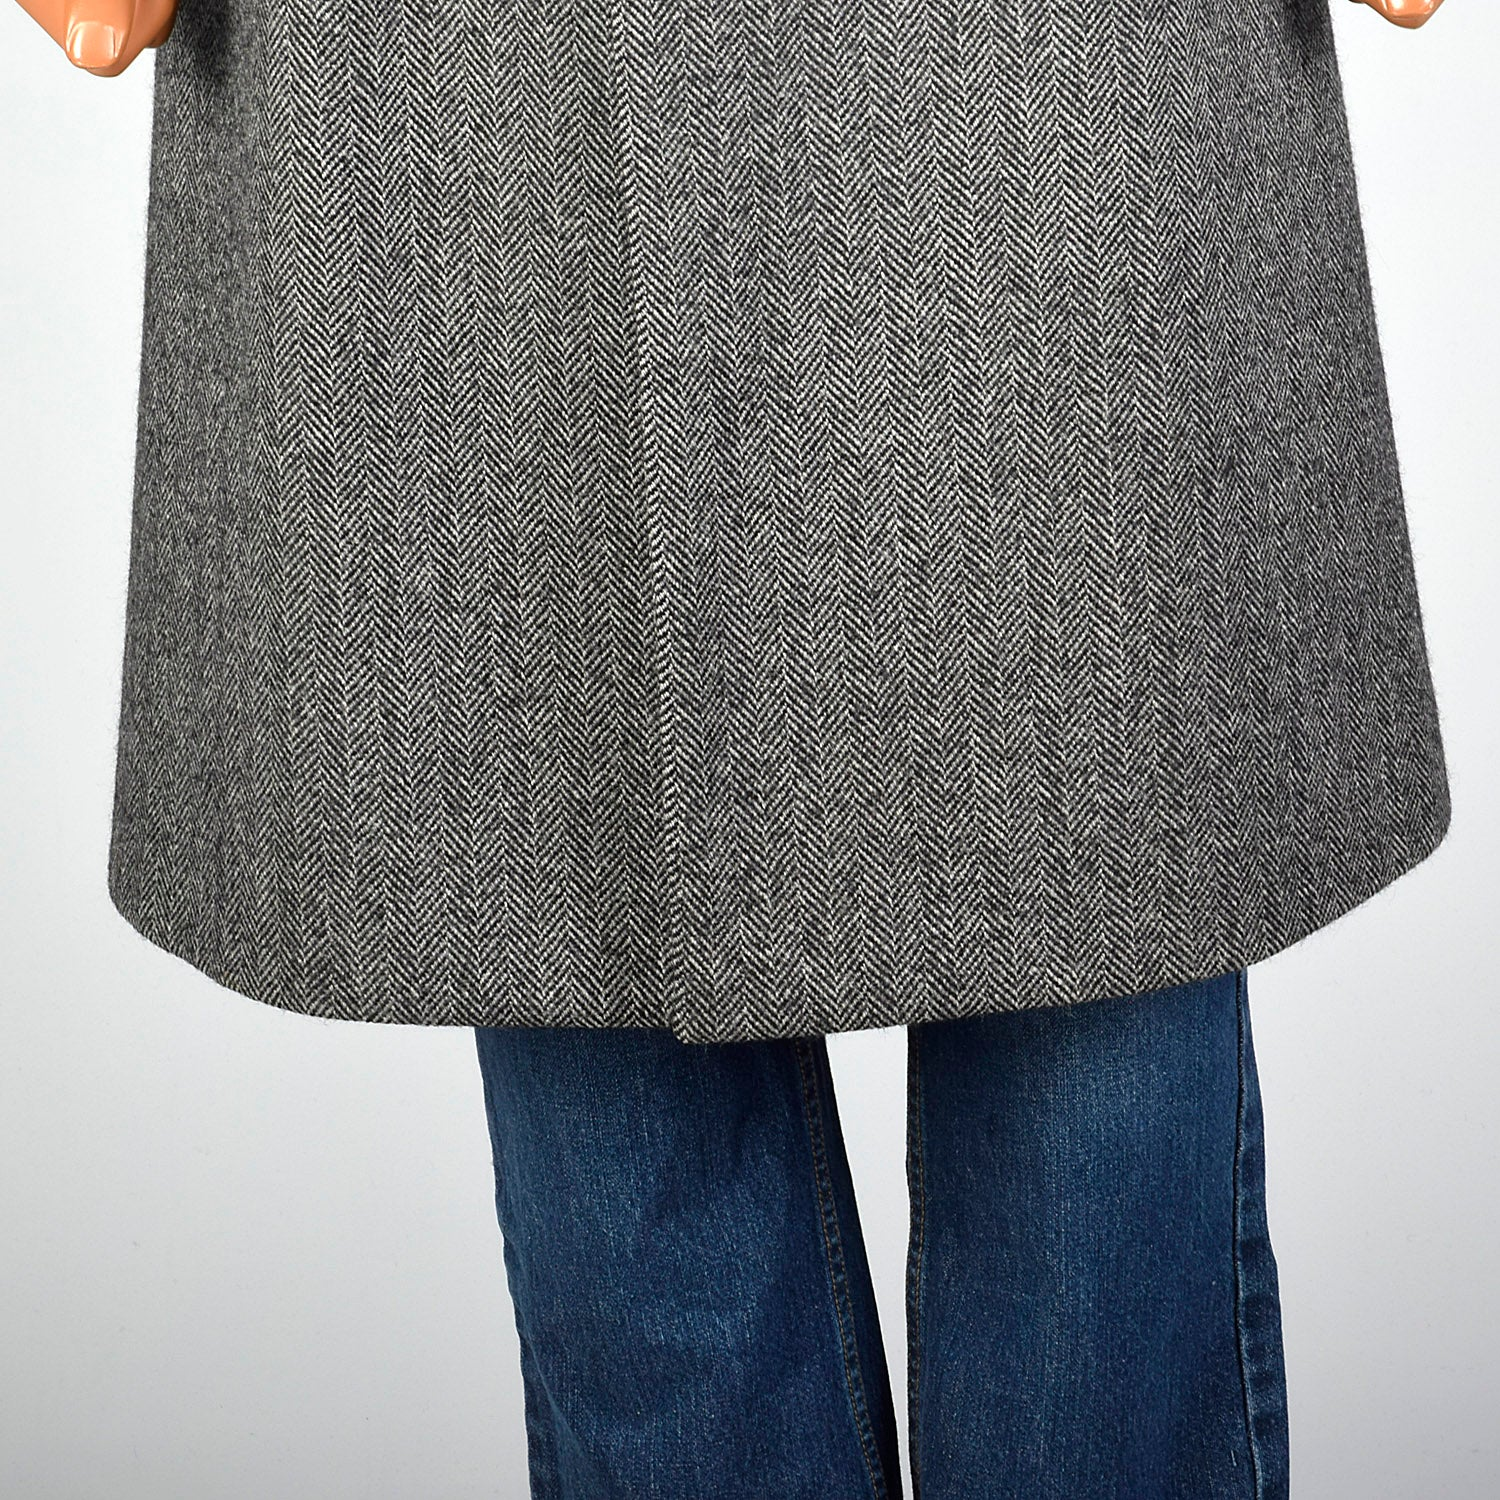 1970s Aquascutum Wool Tweed Gray Coat